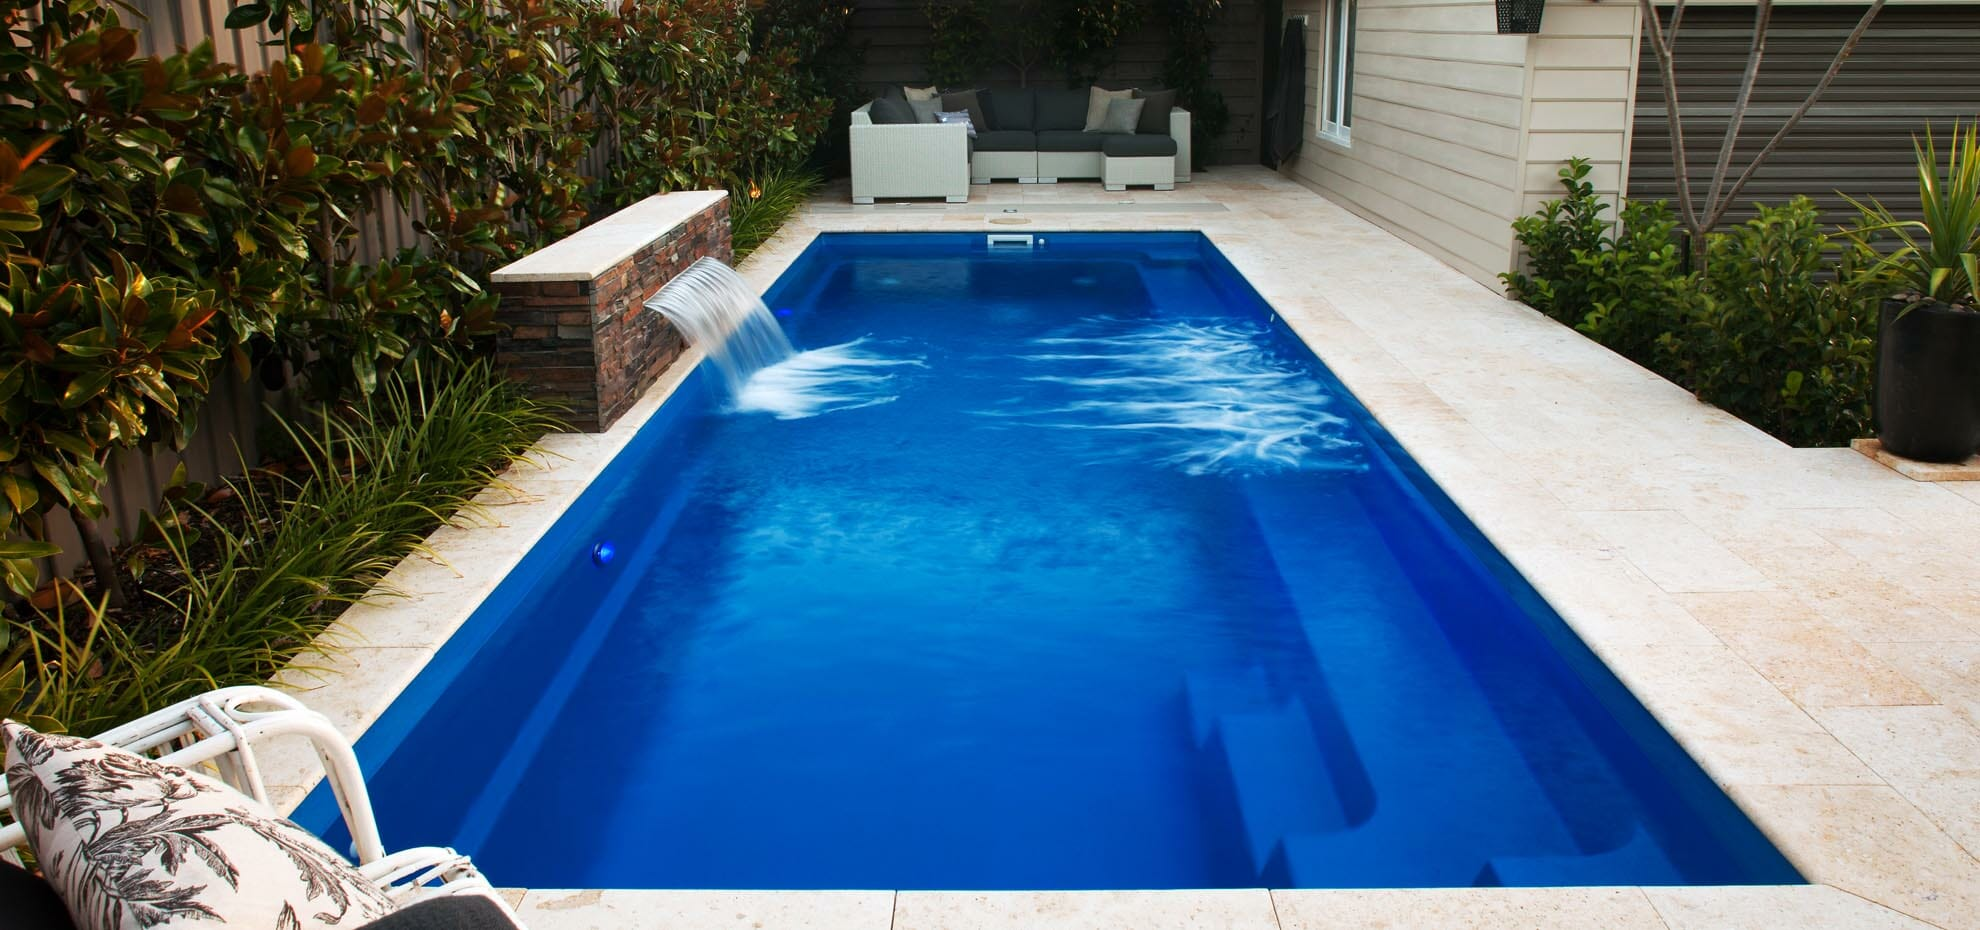 Rectangular harmony fibreglass pool with coping and water feature by Leisure Pools